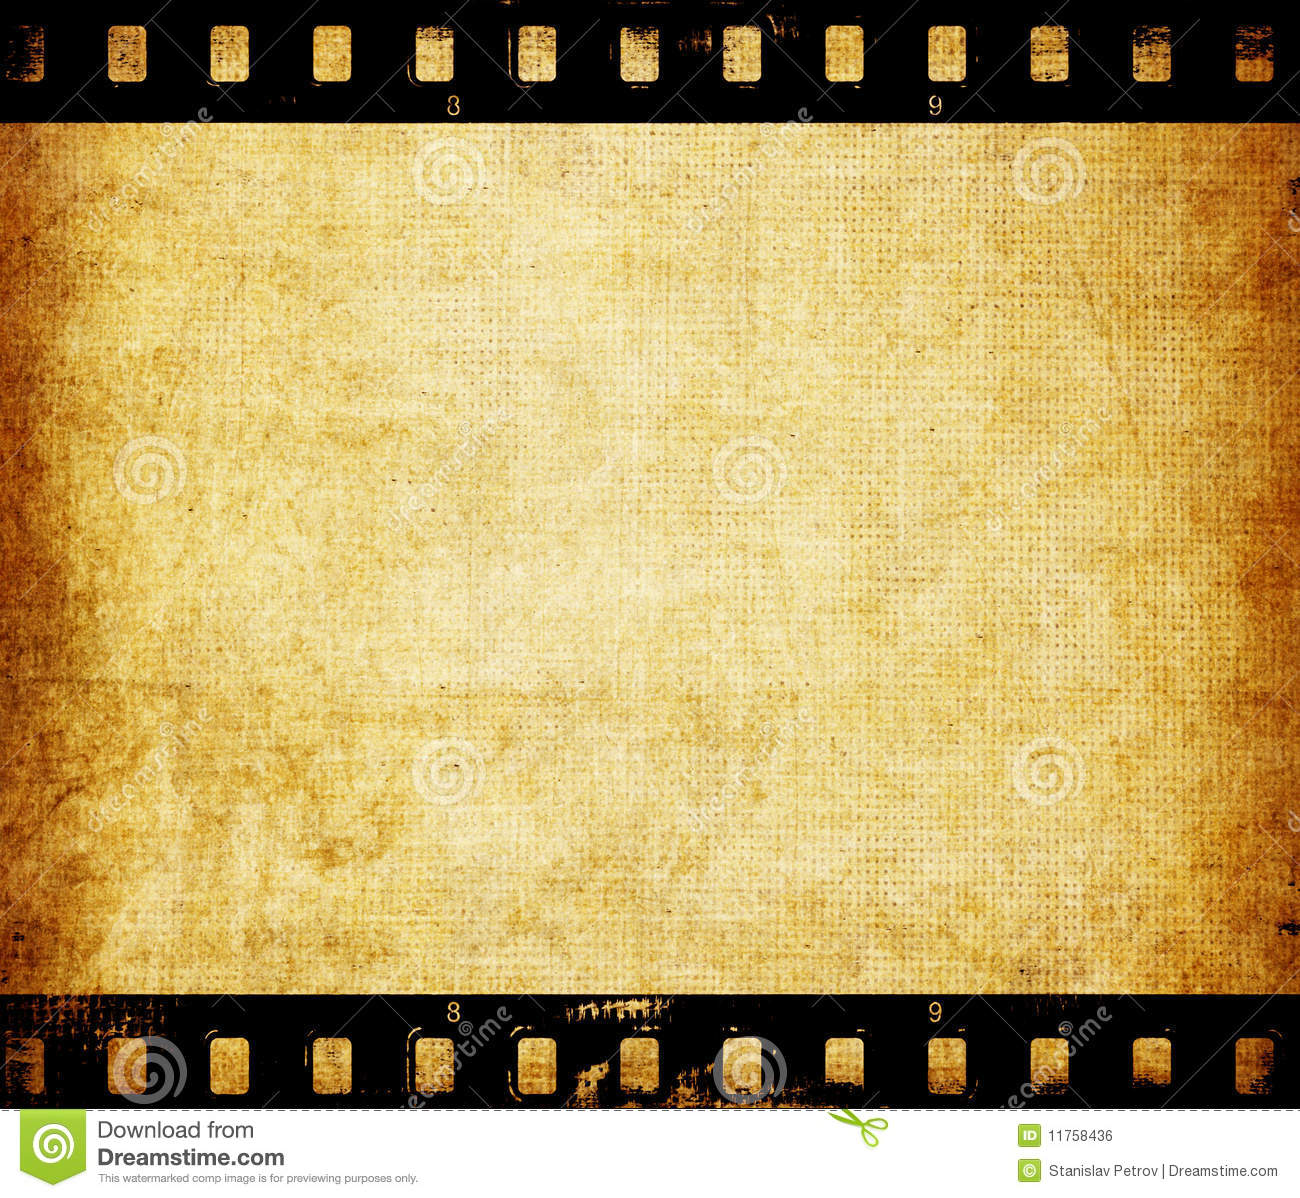 movie reel wallpaper border - photo #13